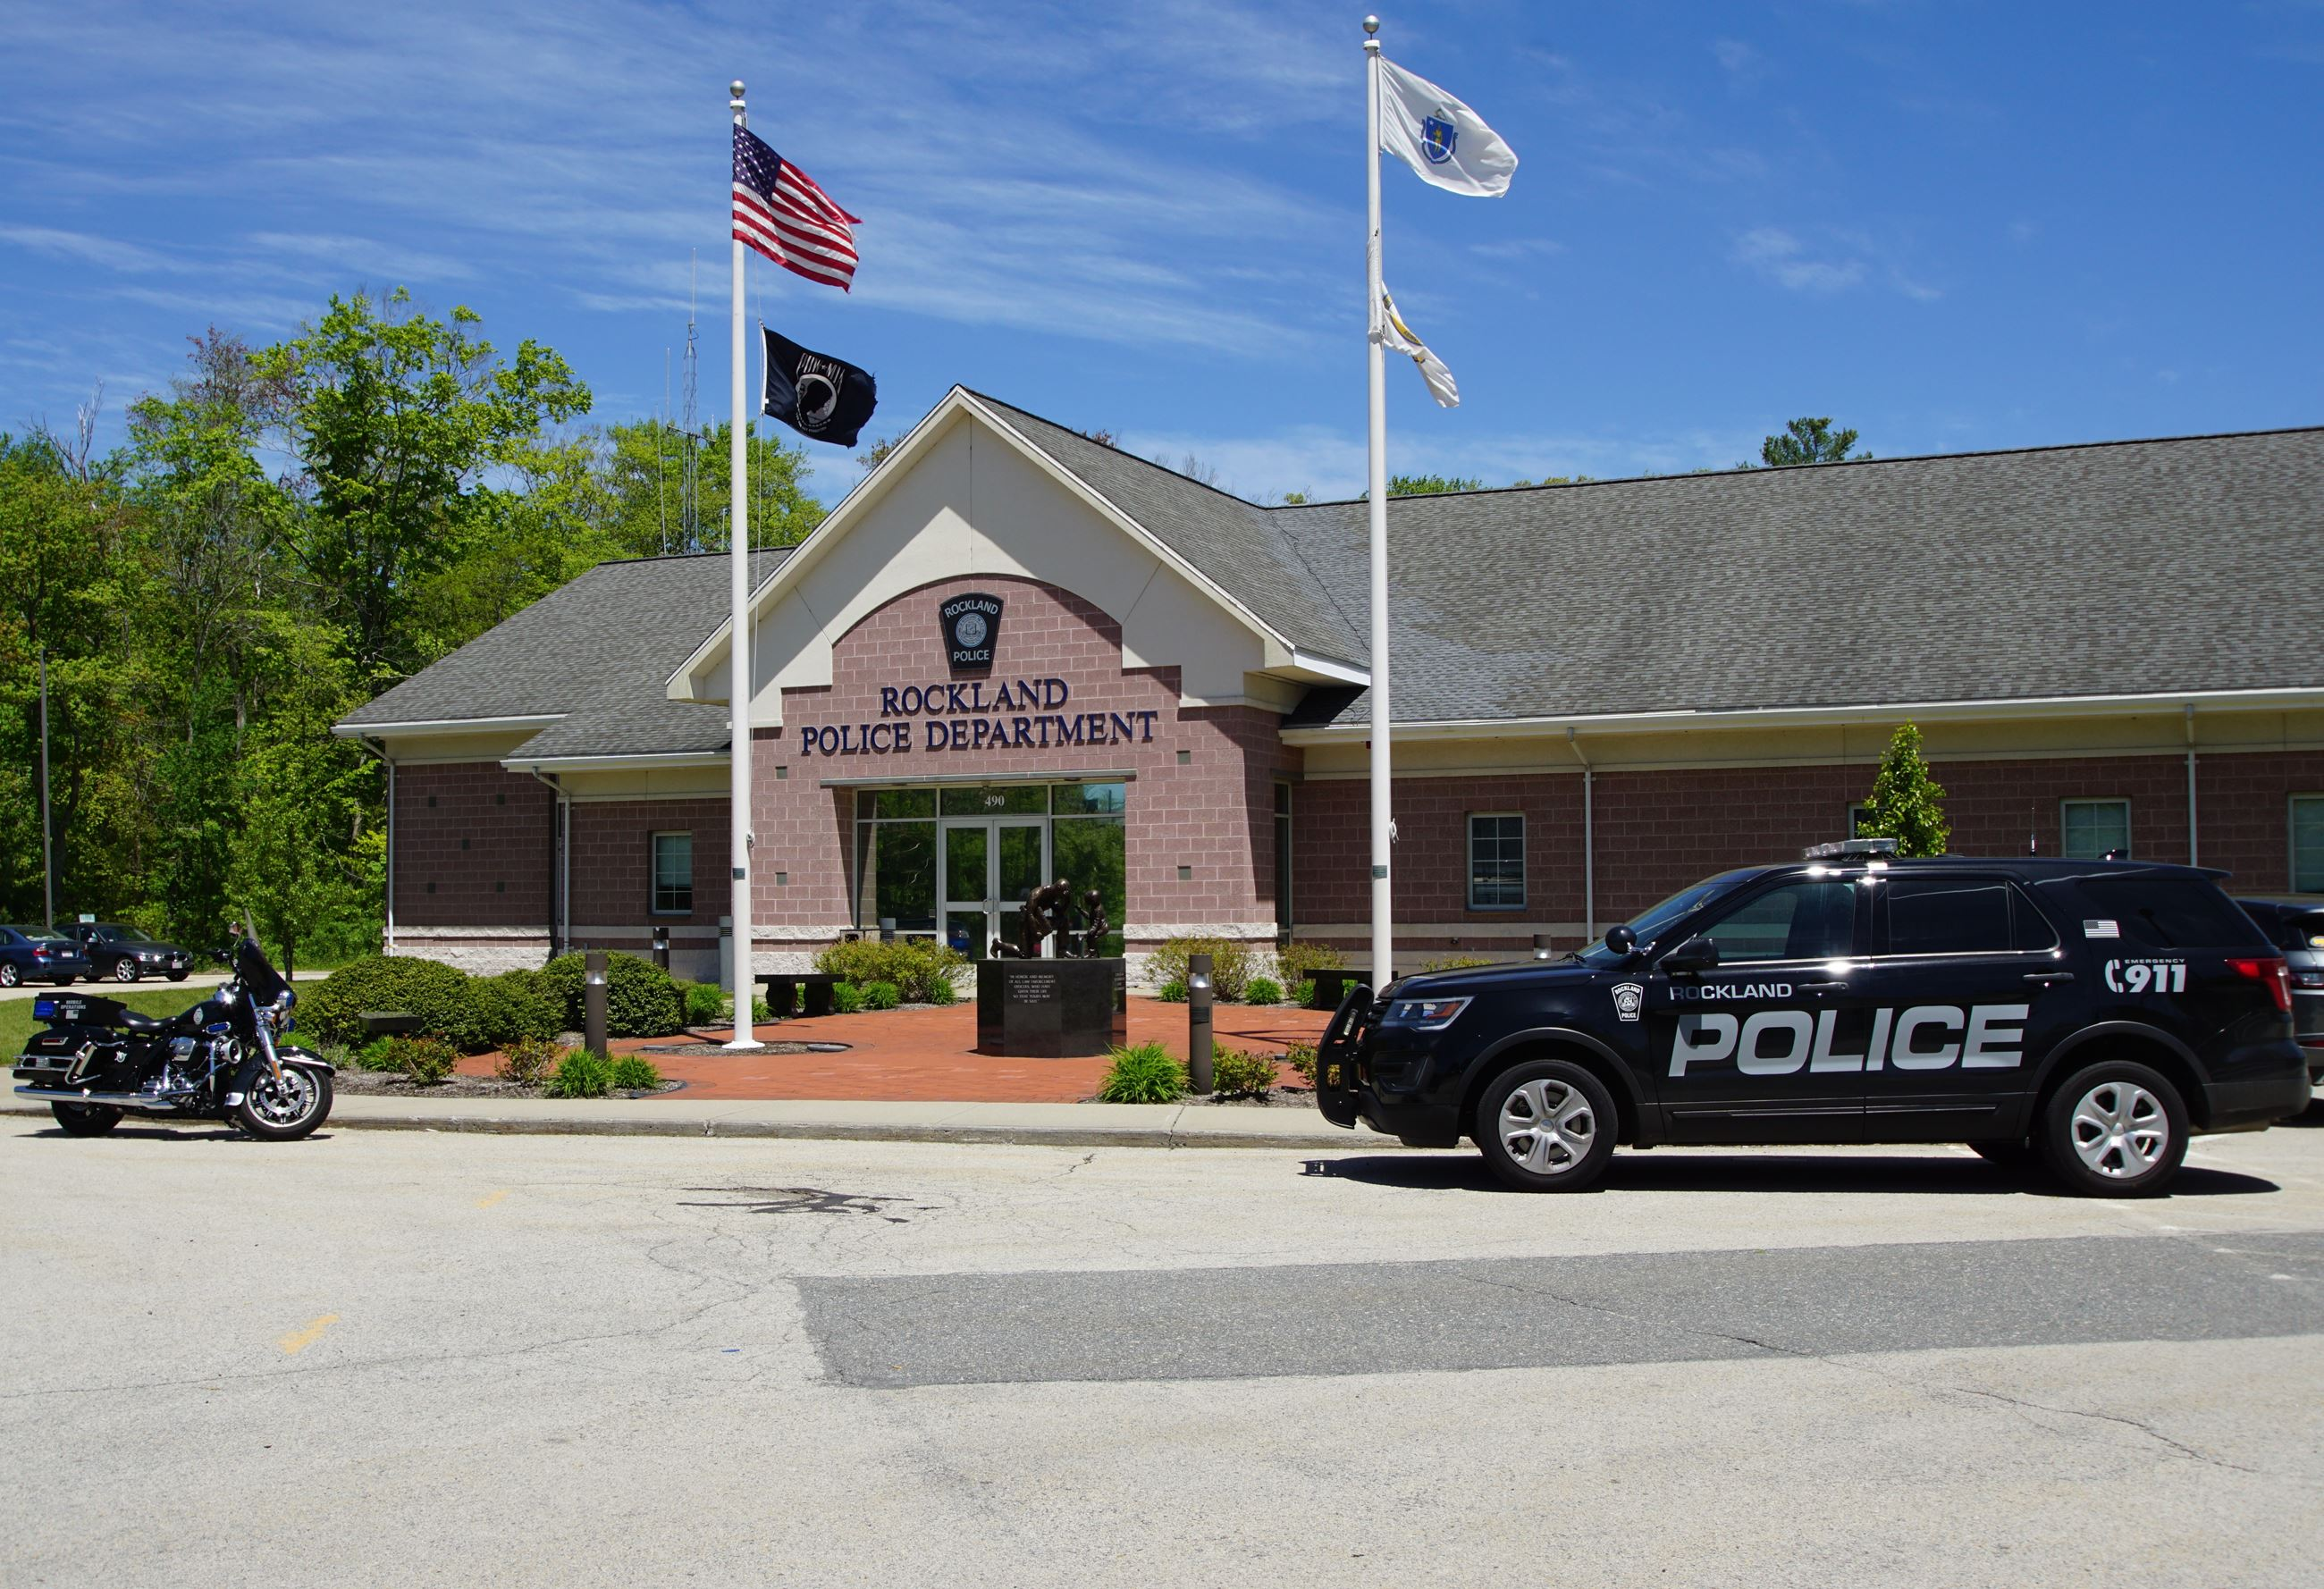 Rockland Police Department Headquarters